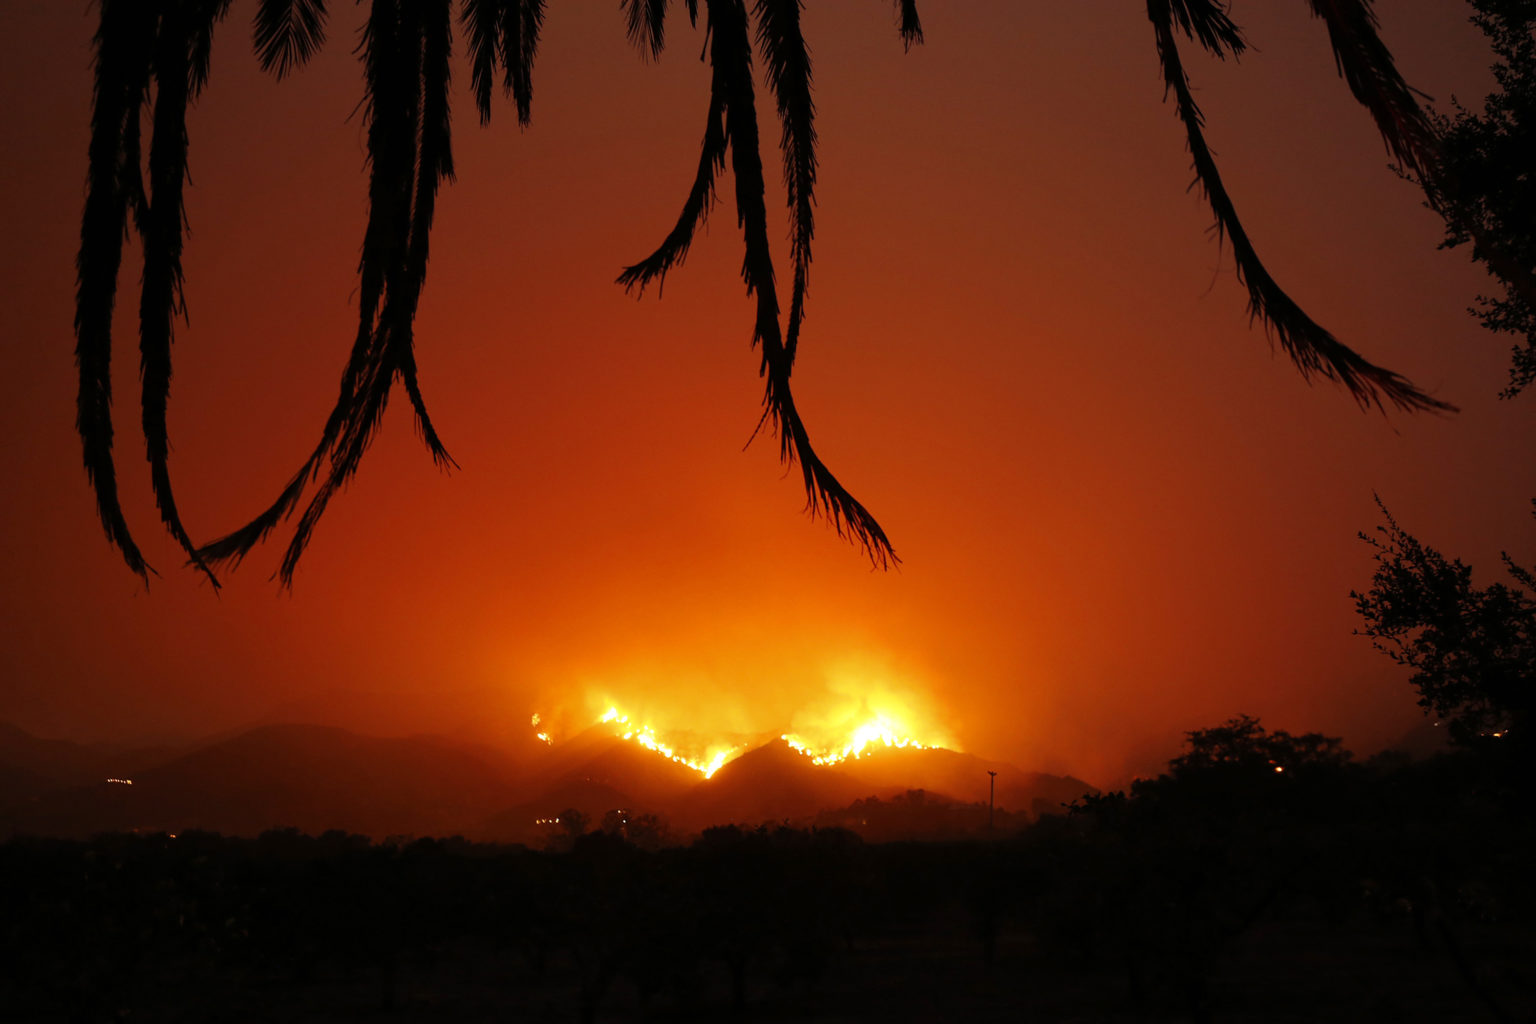 The Thomas fire continues to burn in the upper reaches of Ventura County and in the mountains behind Carpinteria and Montecito in Santa Barbara County with fairly calm winds. (Al Seib/Los Angeles Times/TNS)